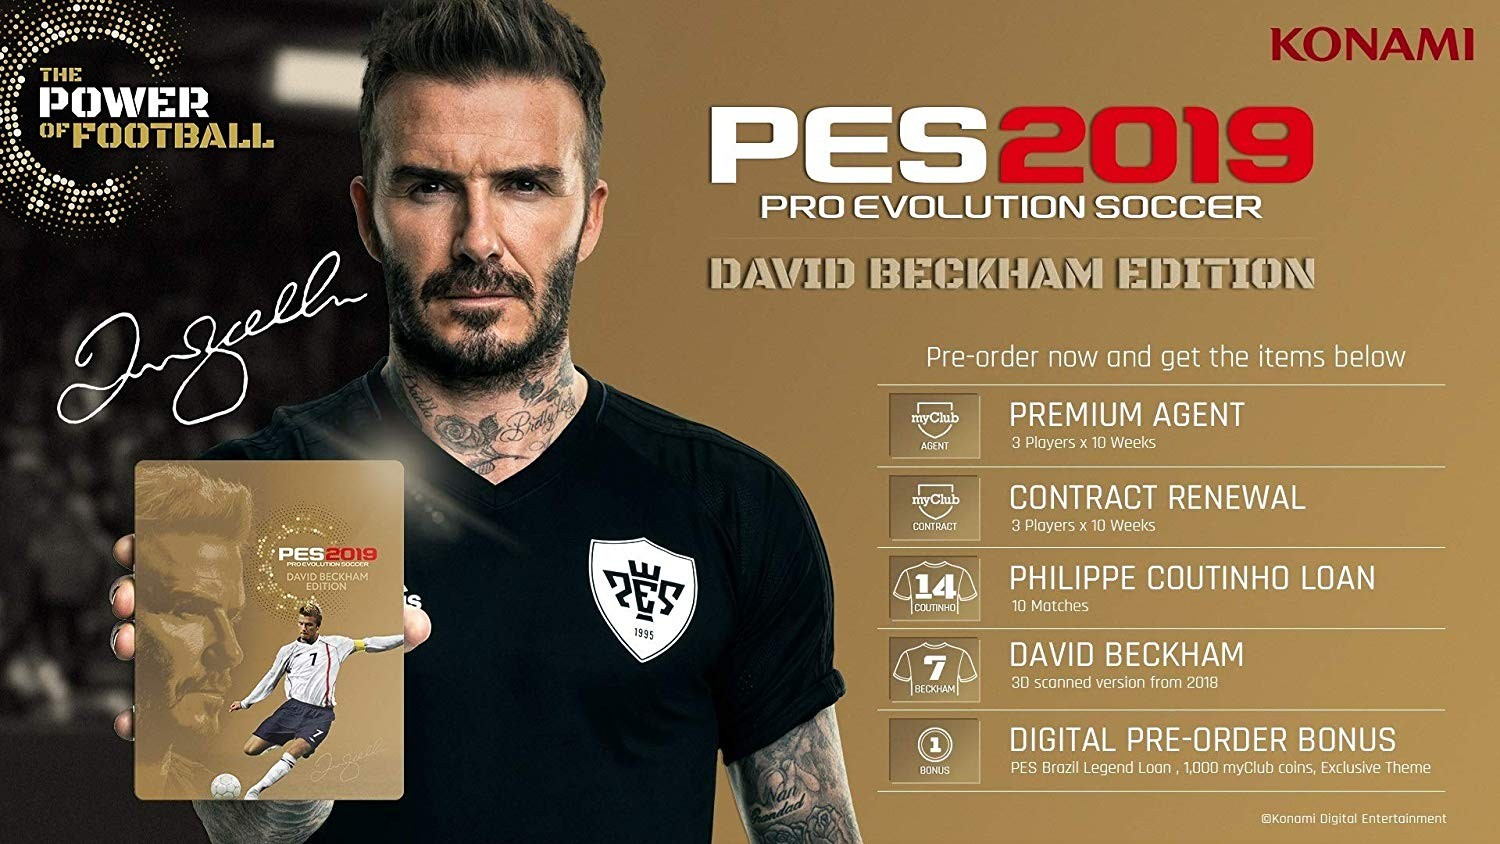 Pro Evolution Soccer 2019 BECKHAM EDITION